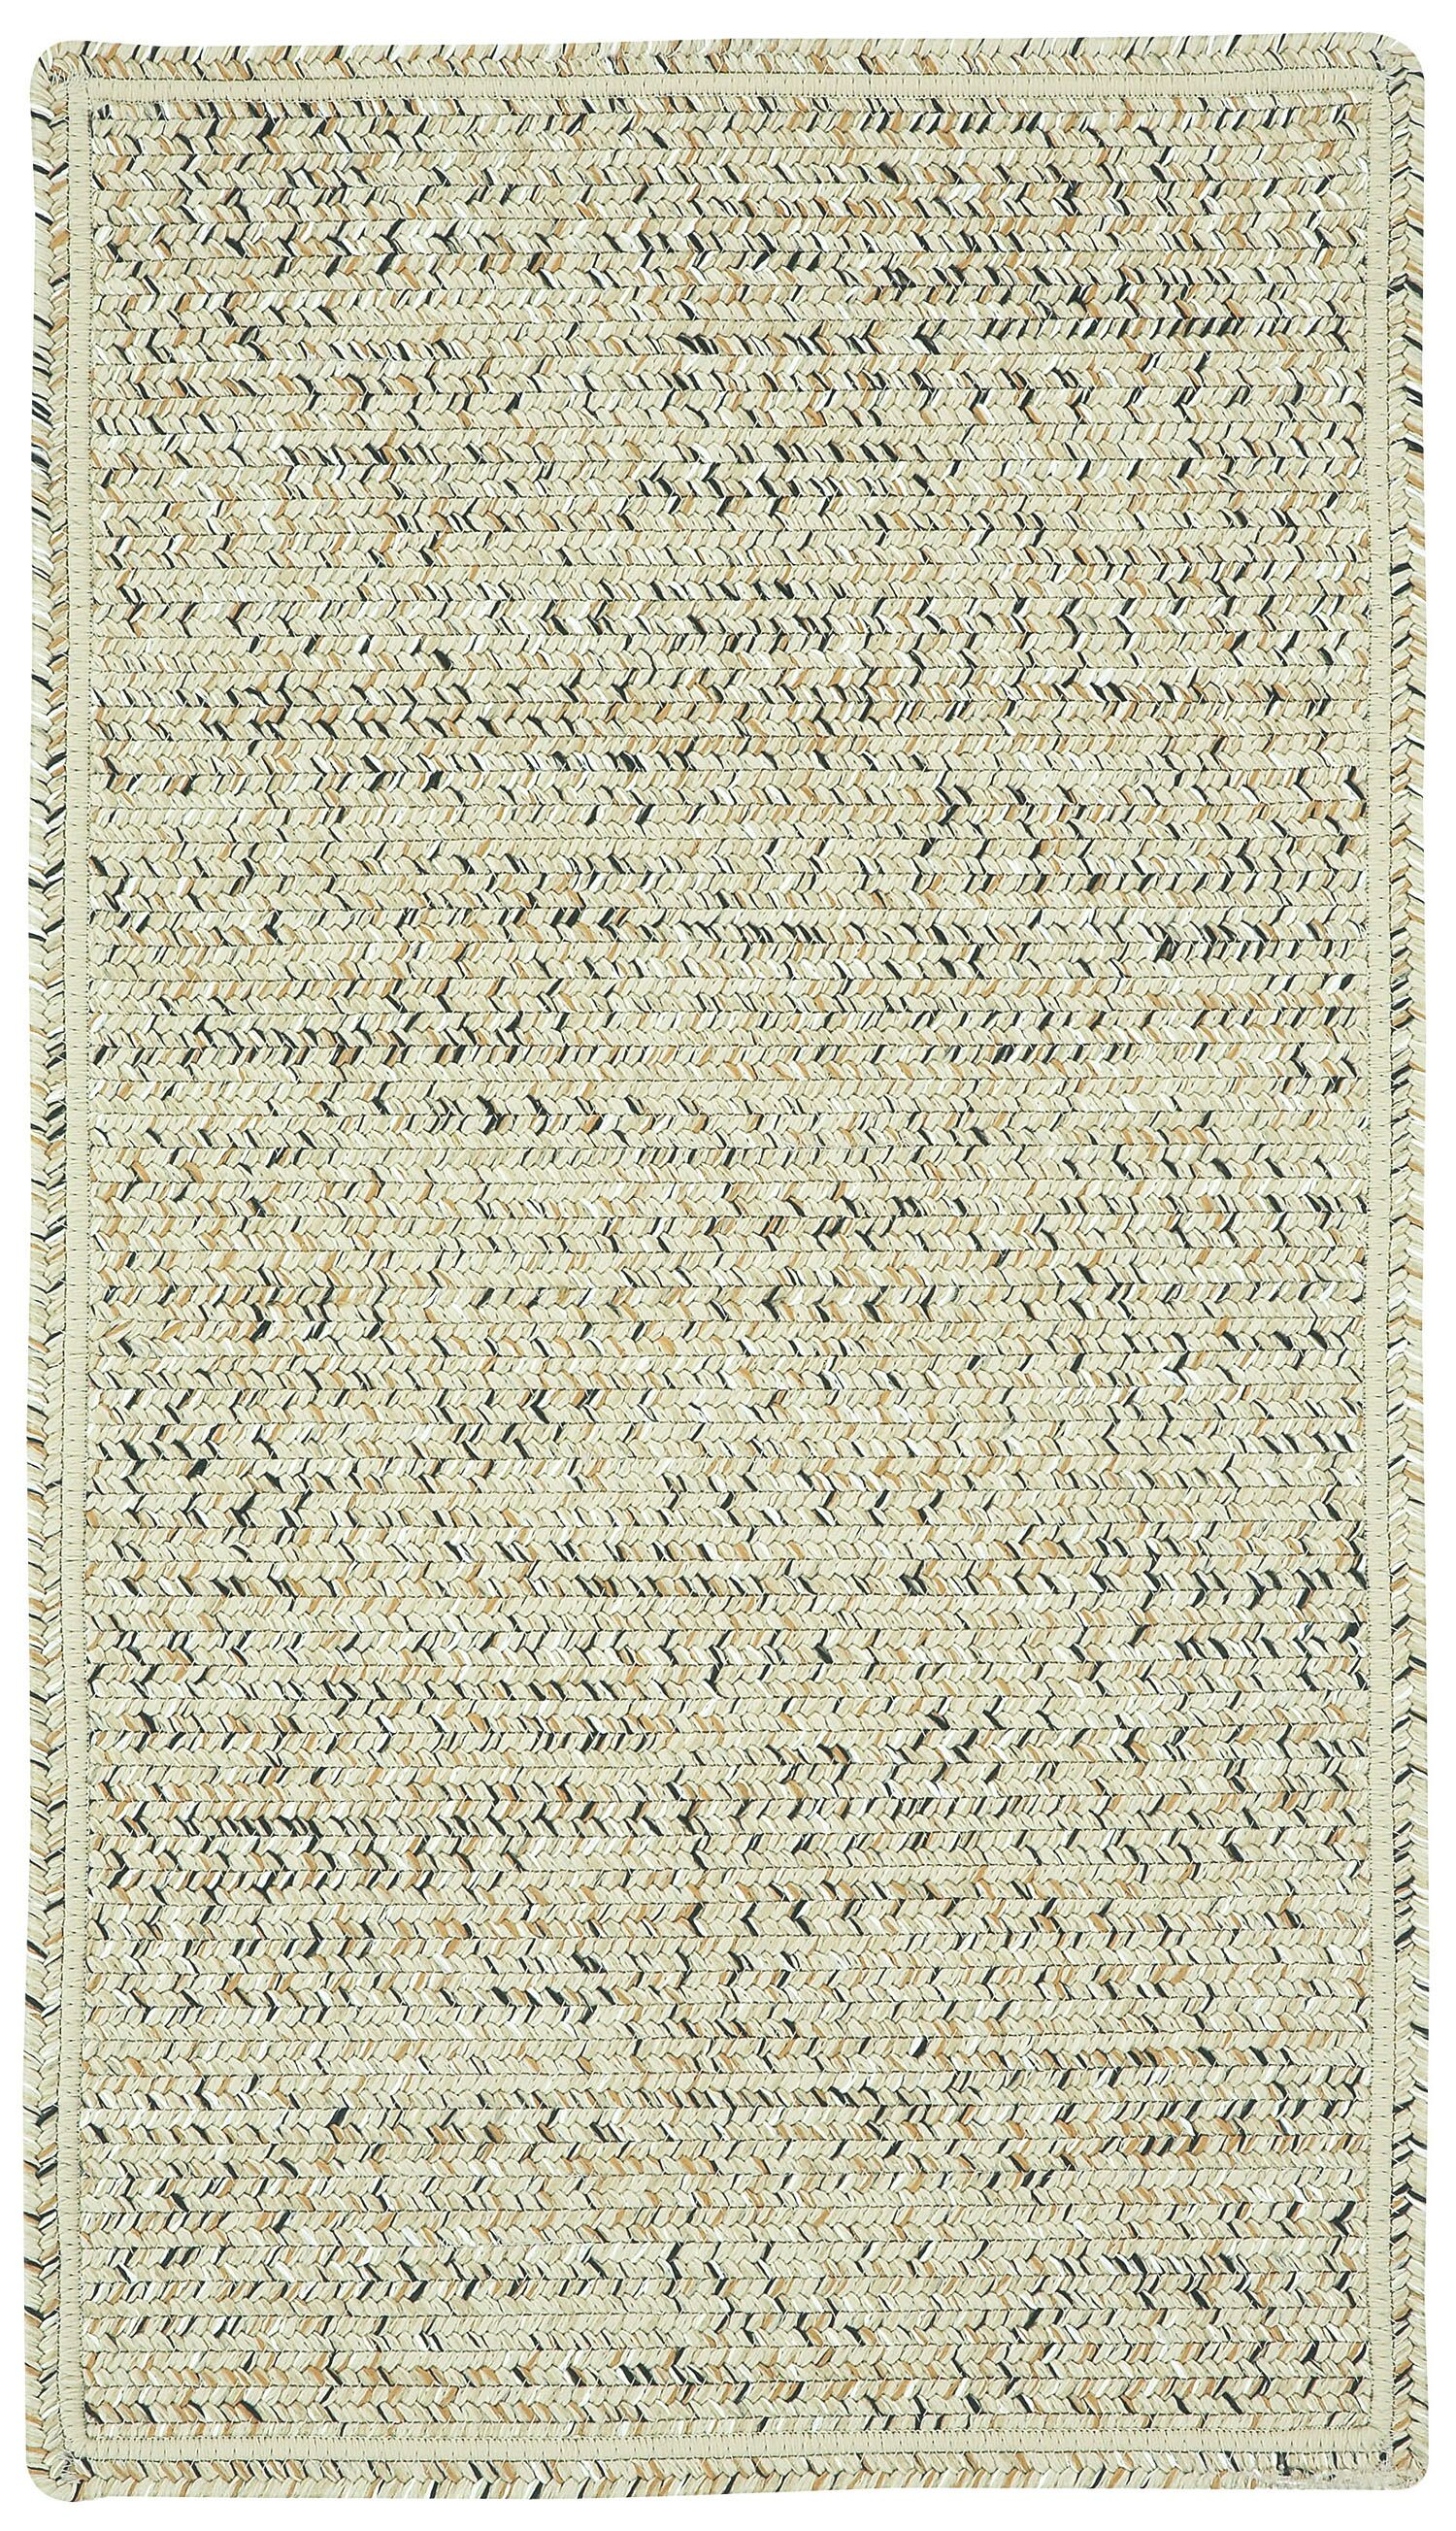 Isaiah Sandy Beach Variegated Outdoor Area Rug Rug Size: Rectangle 9'2